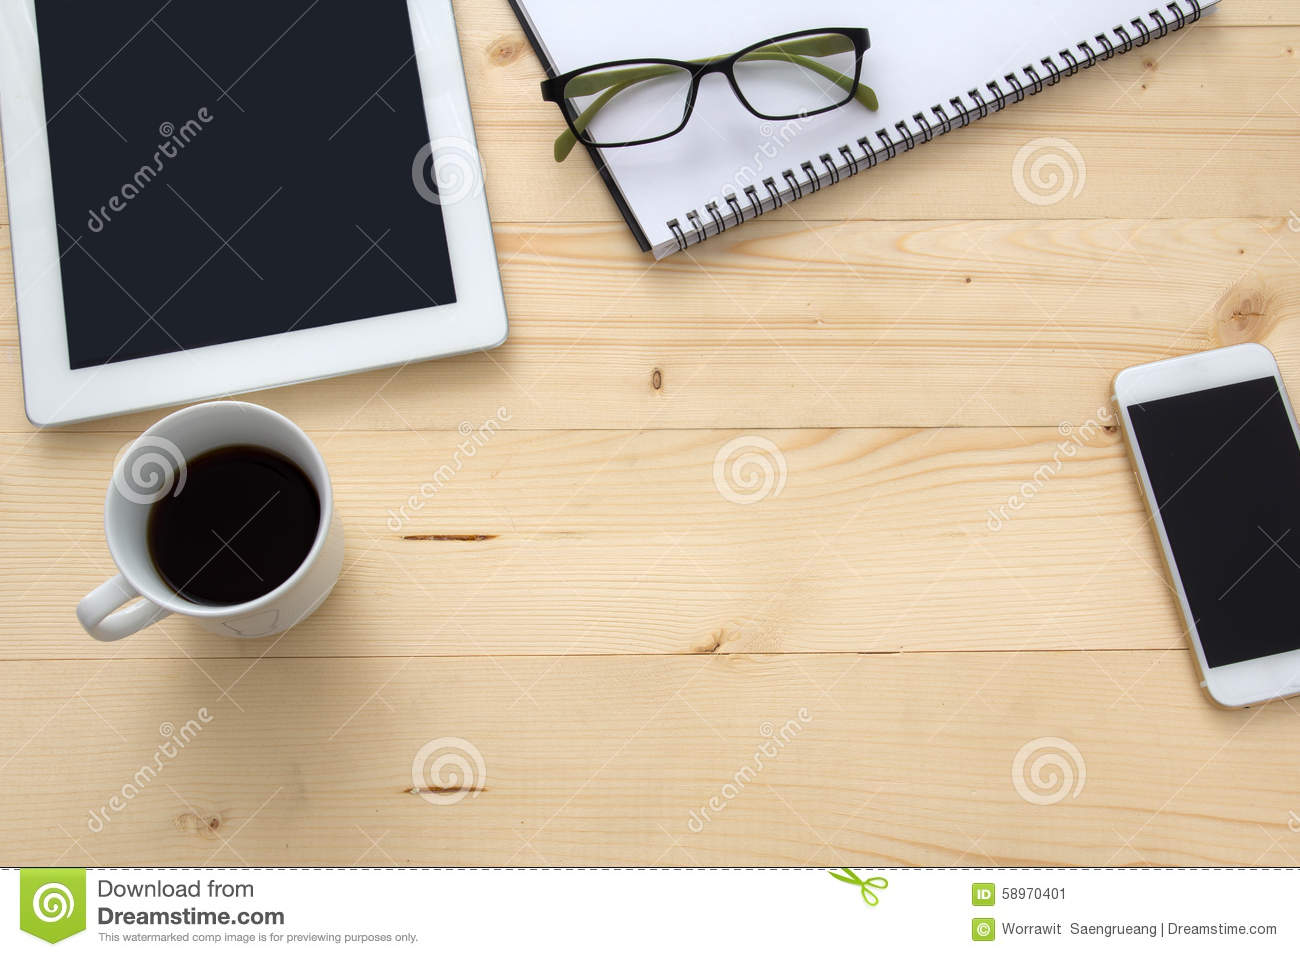 surface of a table with notebook smartphone eye glasses and pen royalty free stock photo. Black Bedroom Furniture Sets. Home Design Ideas